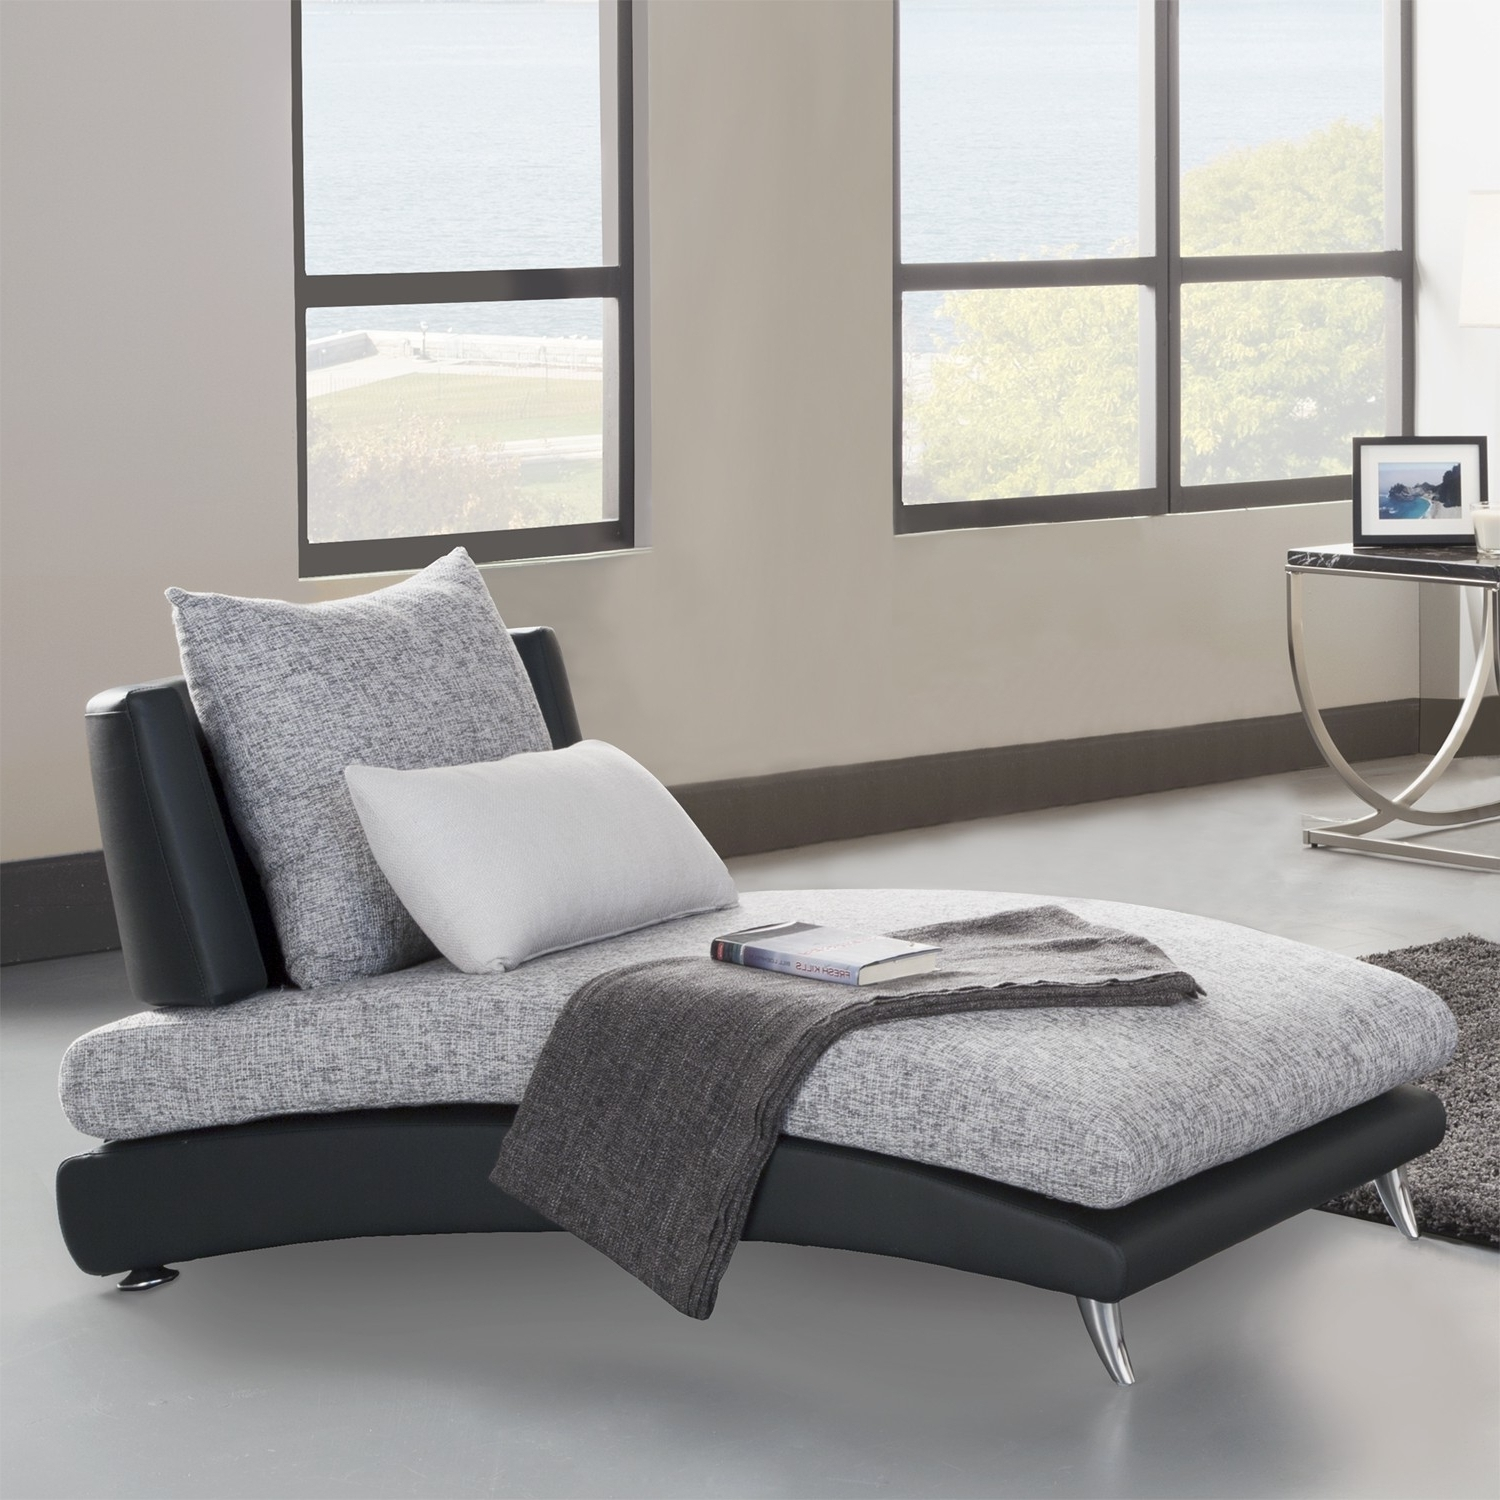 Well Liked Bedroom Chaise Lounges With Regard To Lounge Chair : Bedroom Chaise Lounge Chairs For Best Attractive (View 11 of 15)